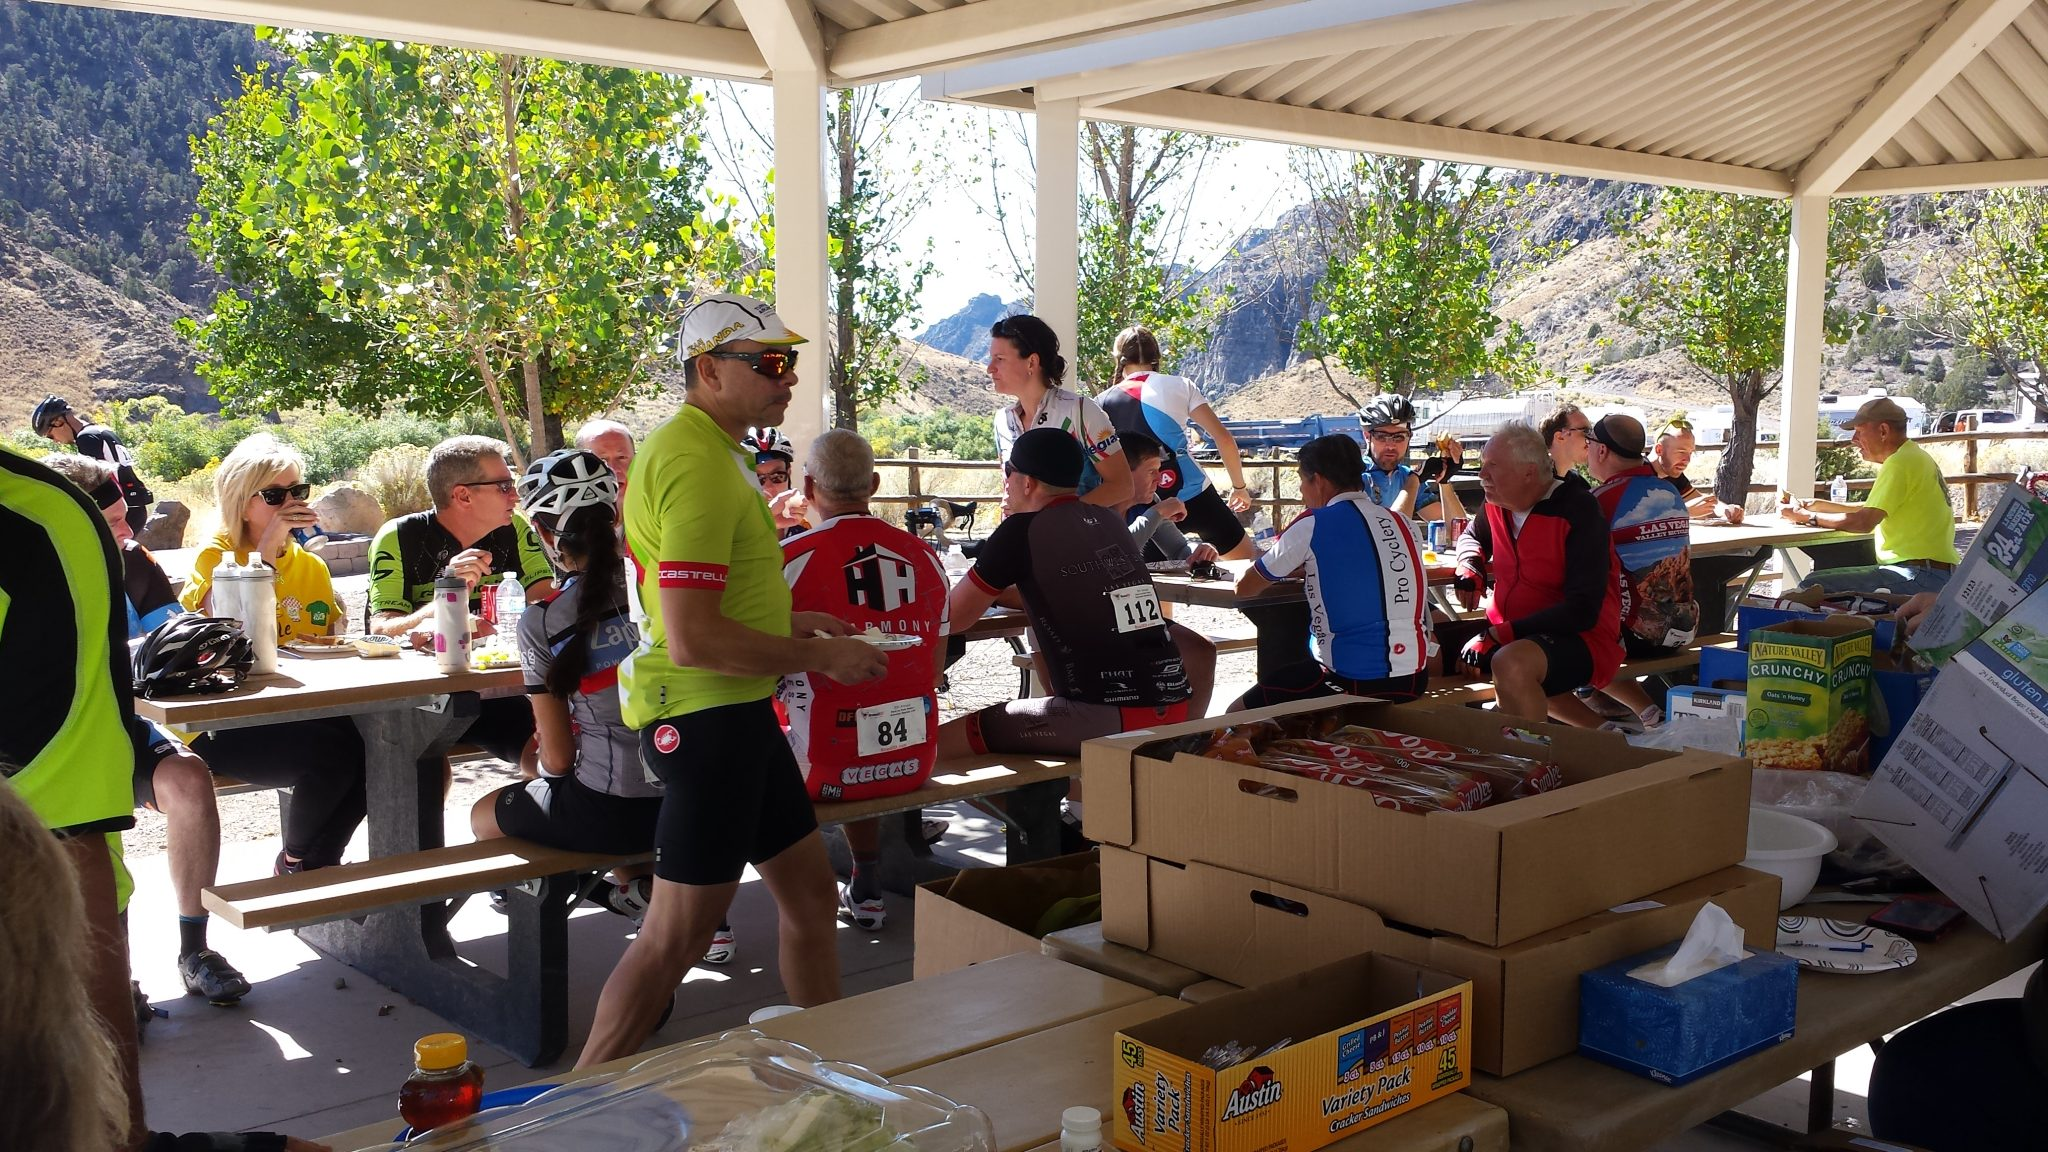 5th annual event draws more than 200 riders